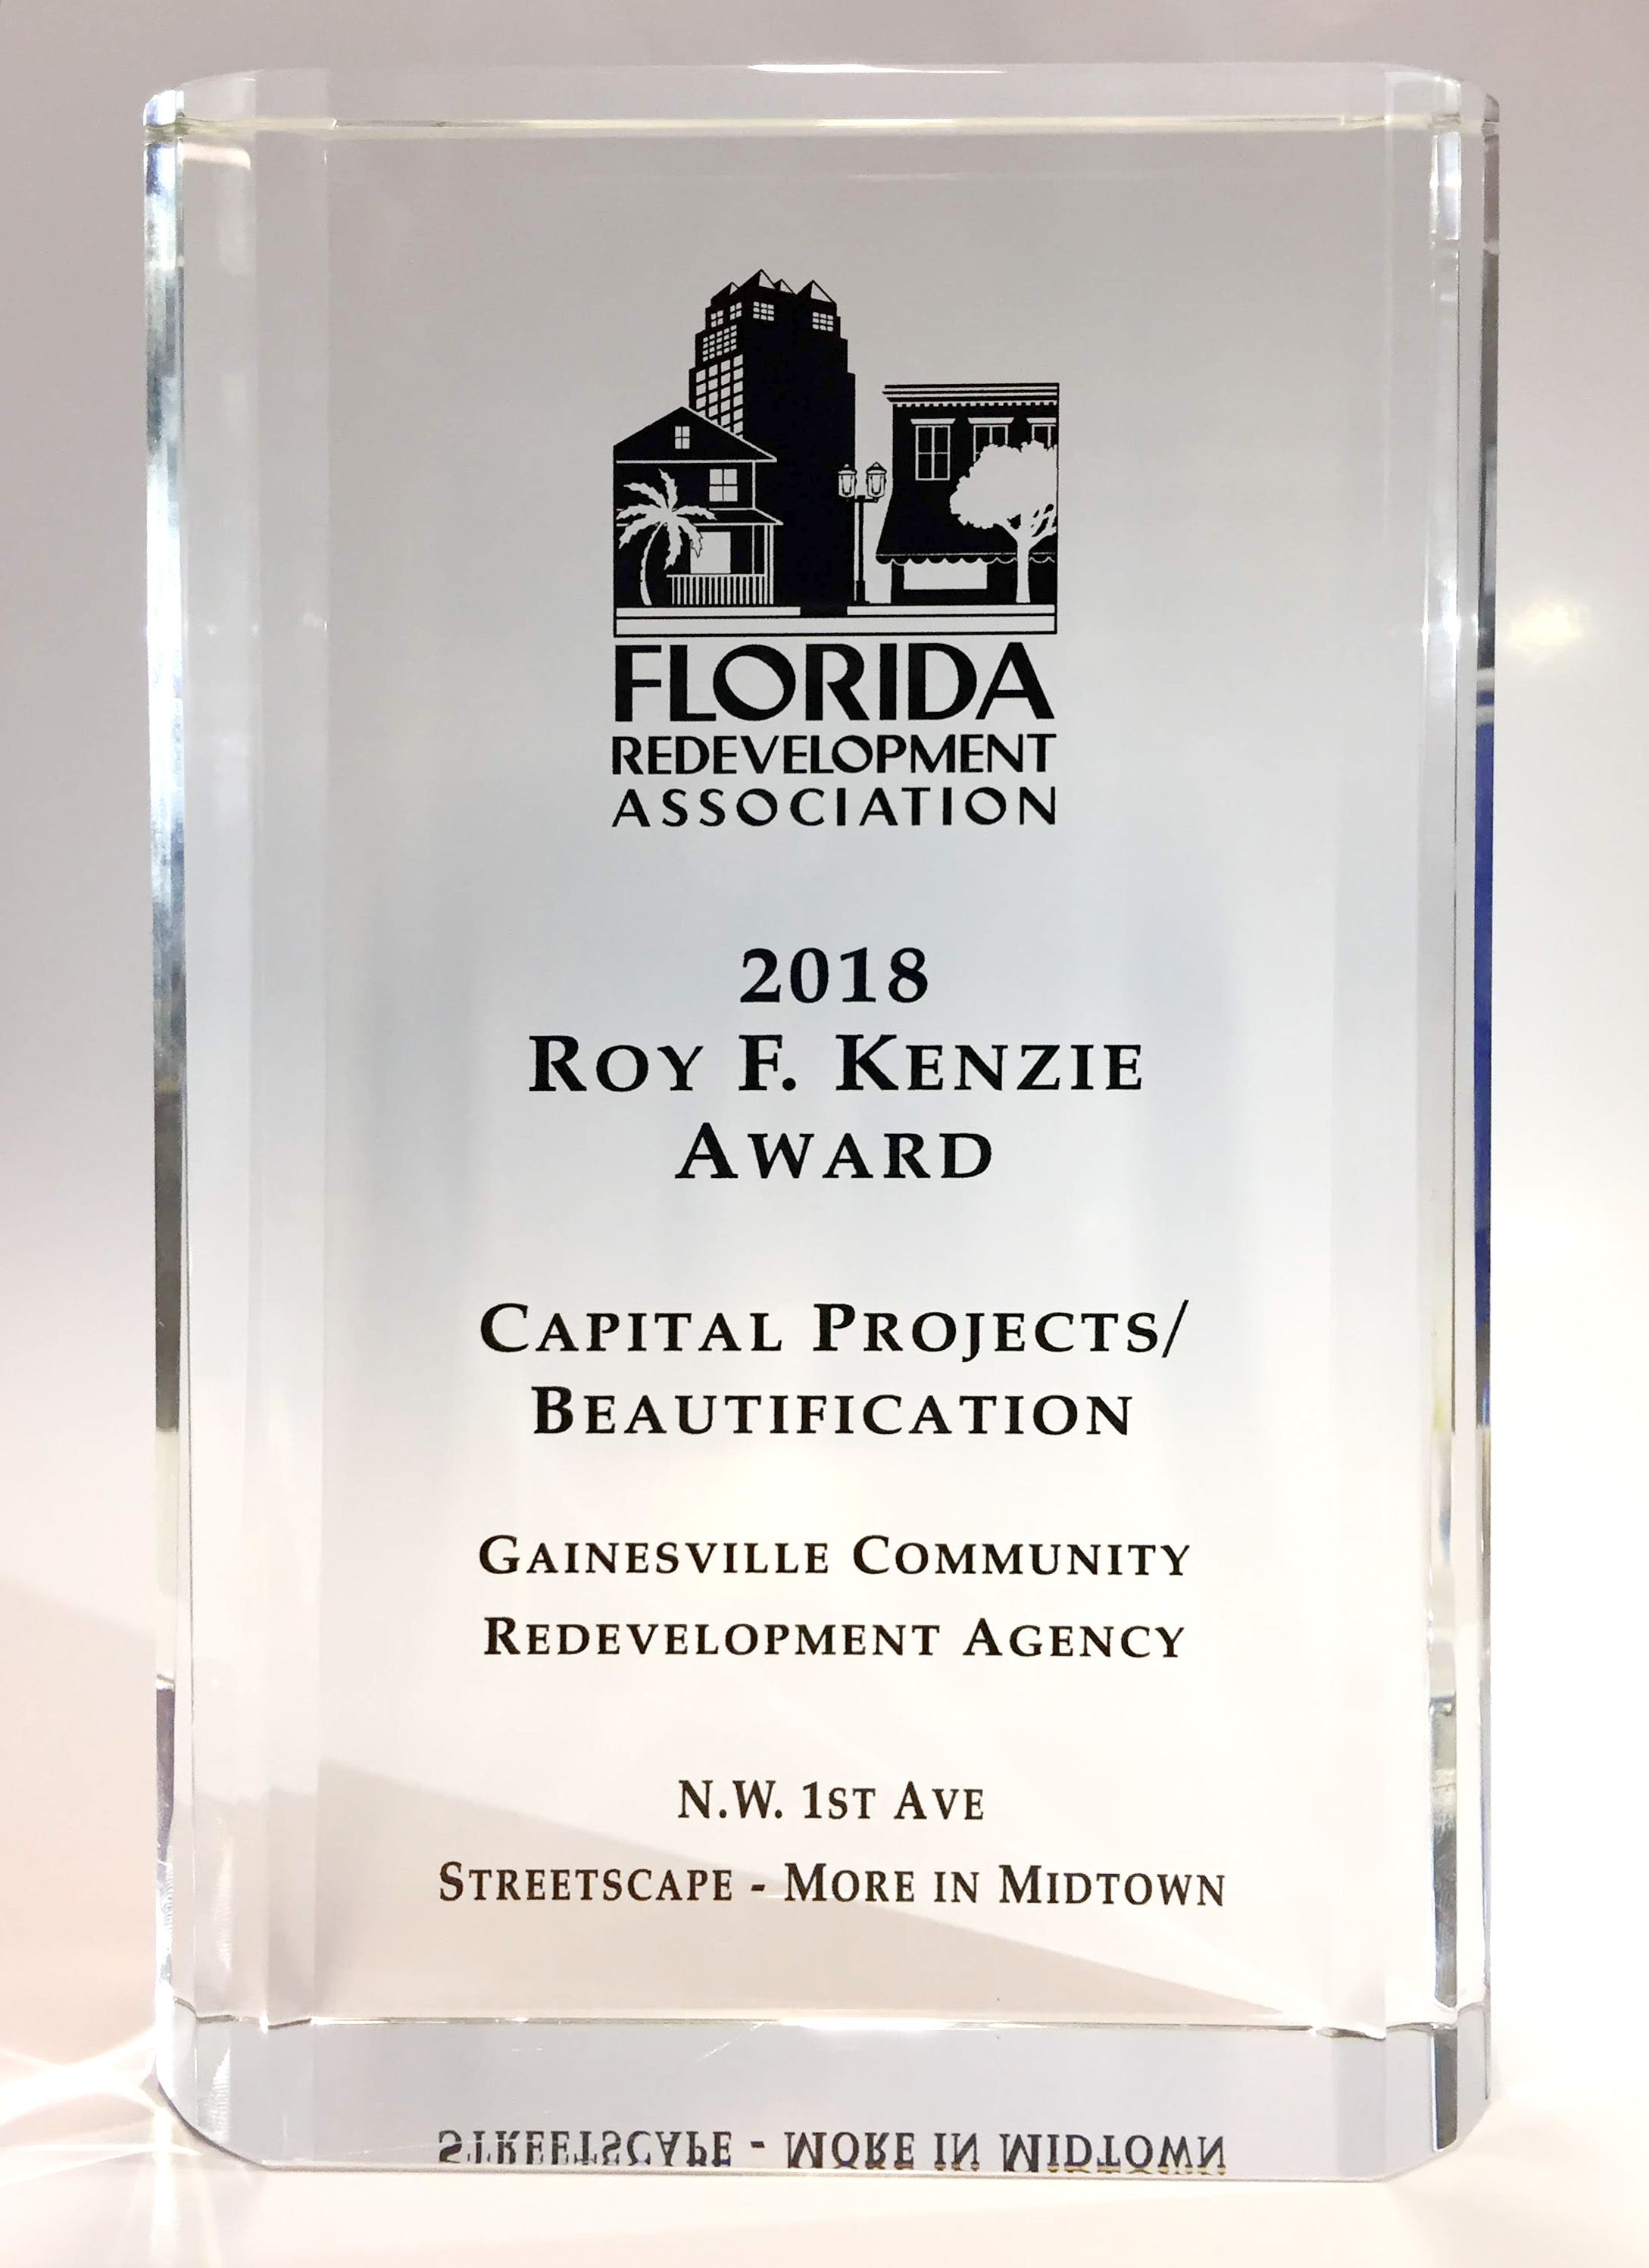 Gainesville CRA Receives Capital Projects/Beautification Award from Florida Redevelopment Association